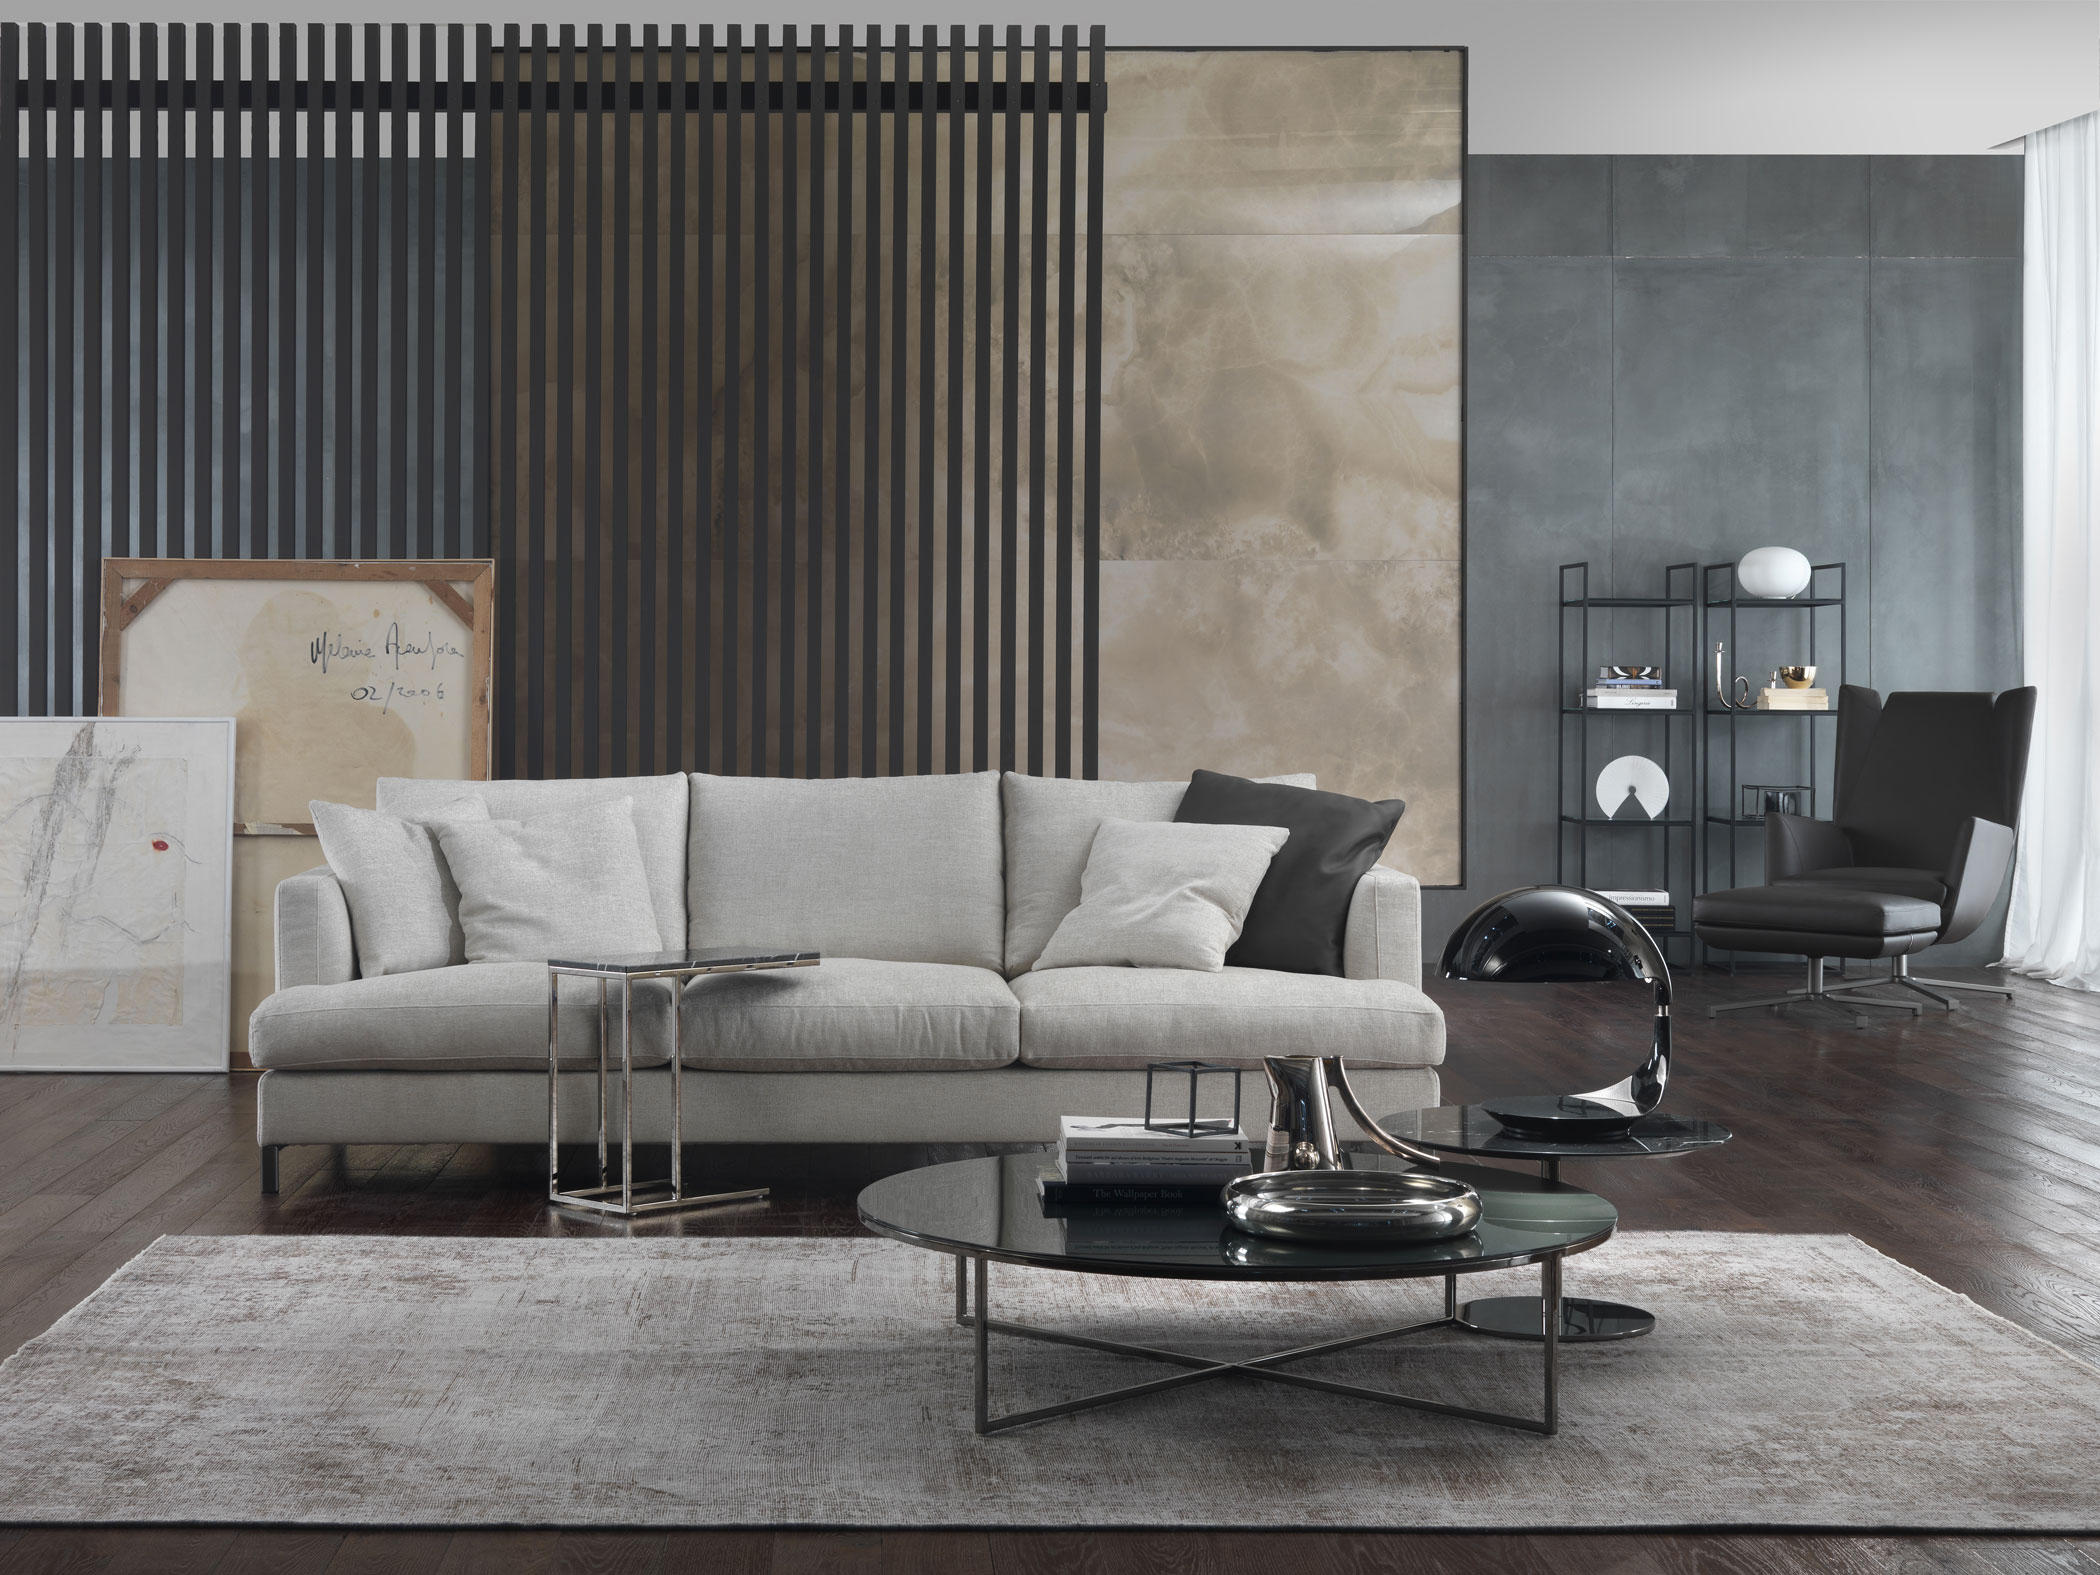 loft sofa lounge sofas from marelli architonic. Black Bedroom Furniture Sets. Home Design Ideas